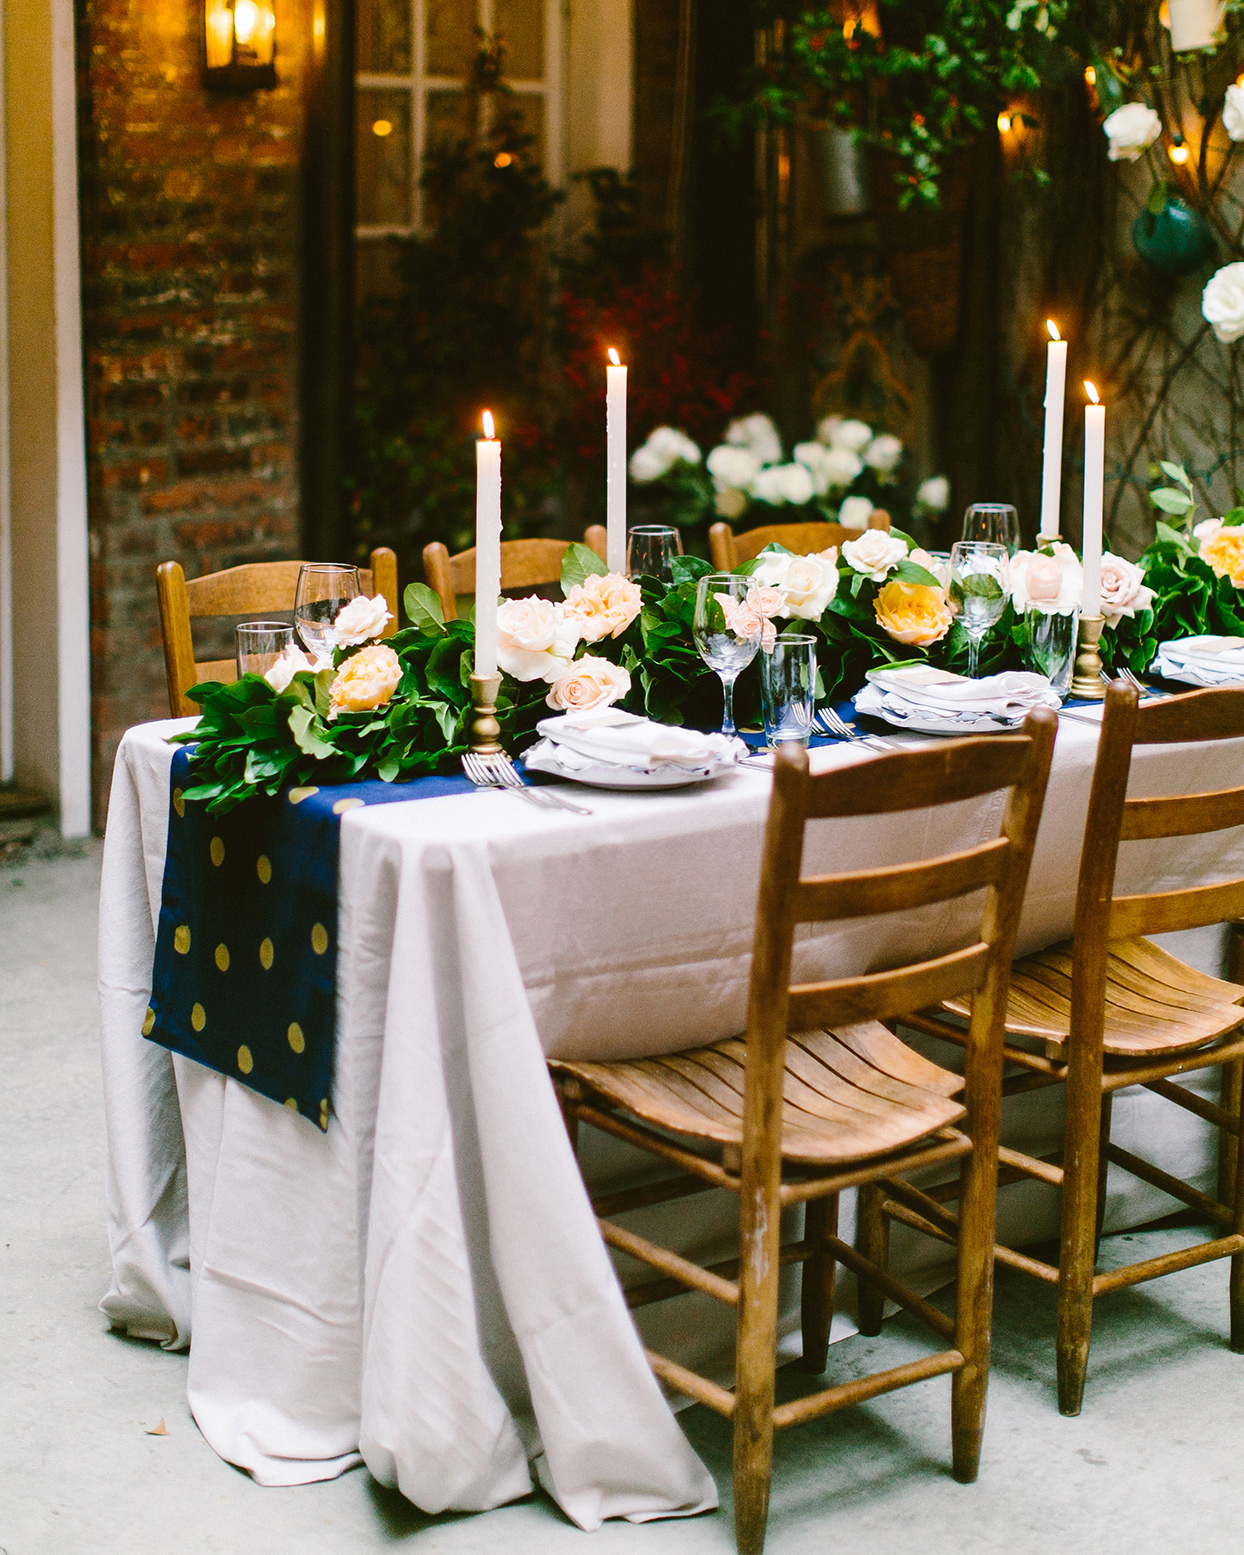 Wedding Website Url Ideas: Our Favorite Restaurant Wedding Décor Ideas